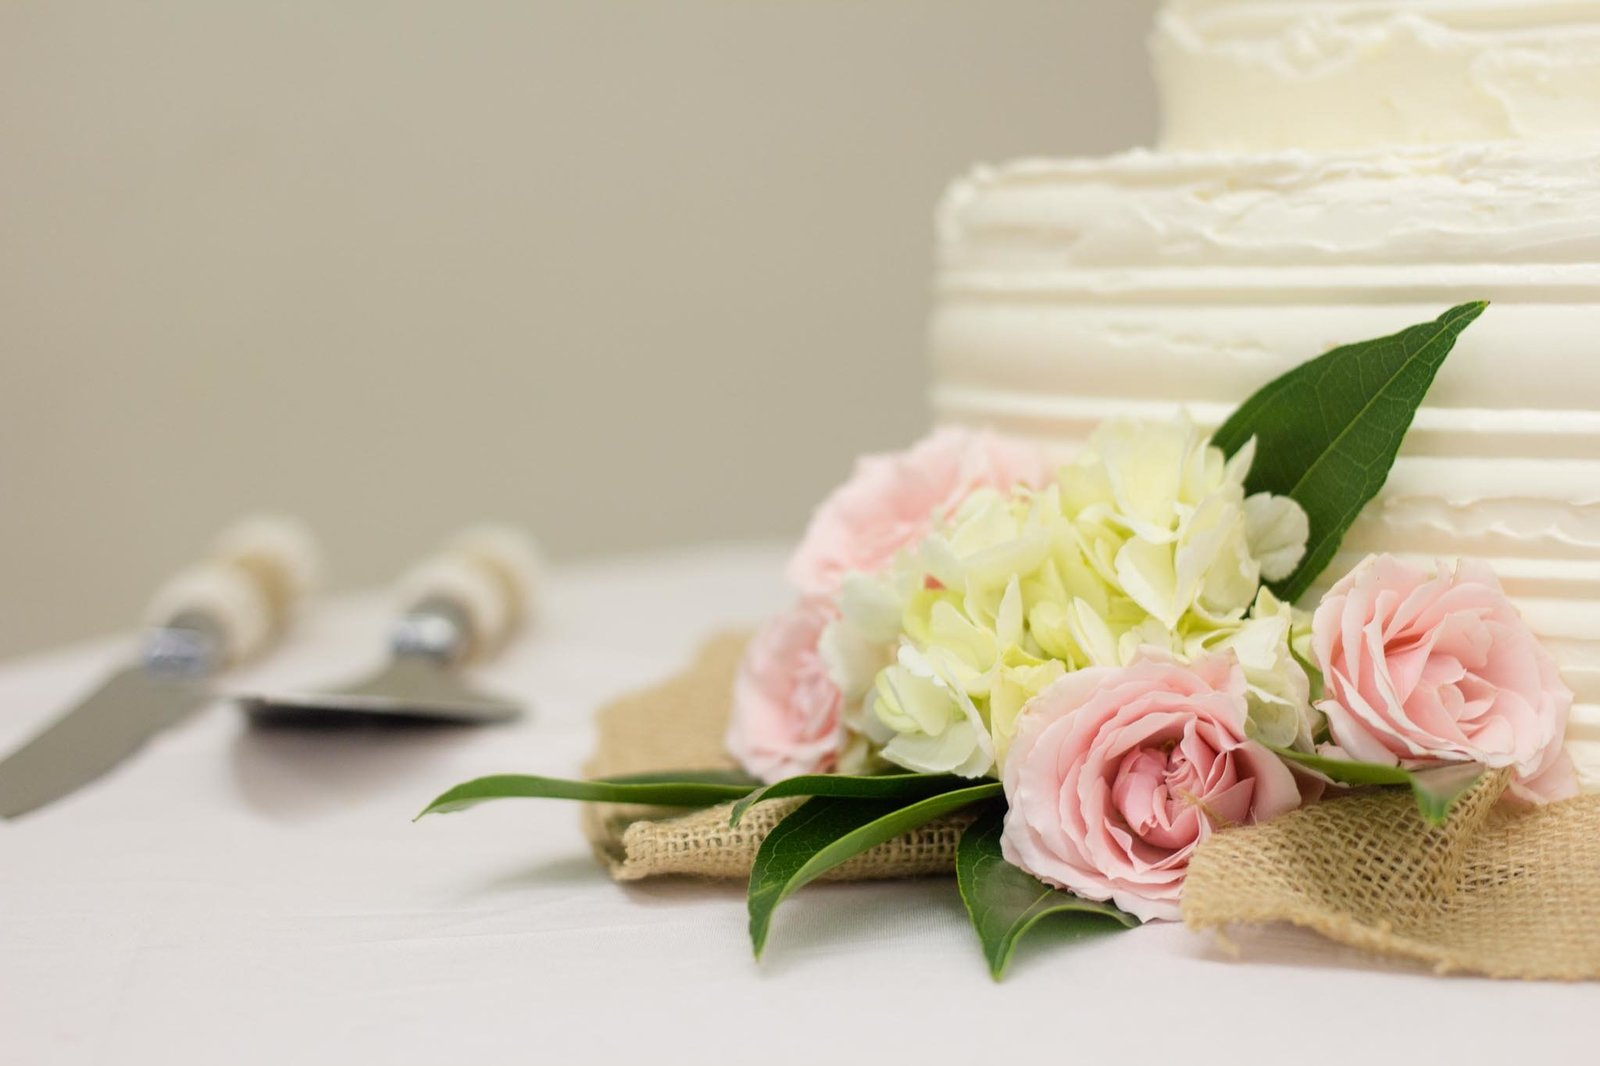 White wedding cake with blush, cream and green flowers on dessert table